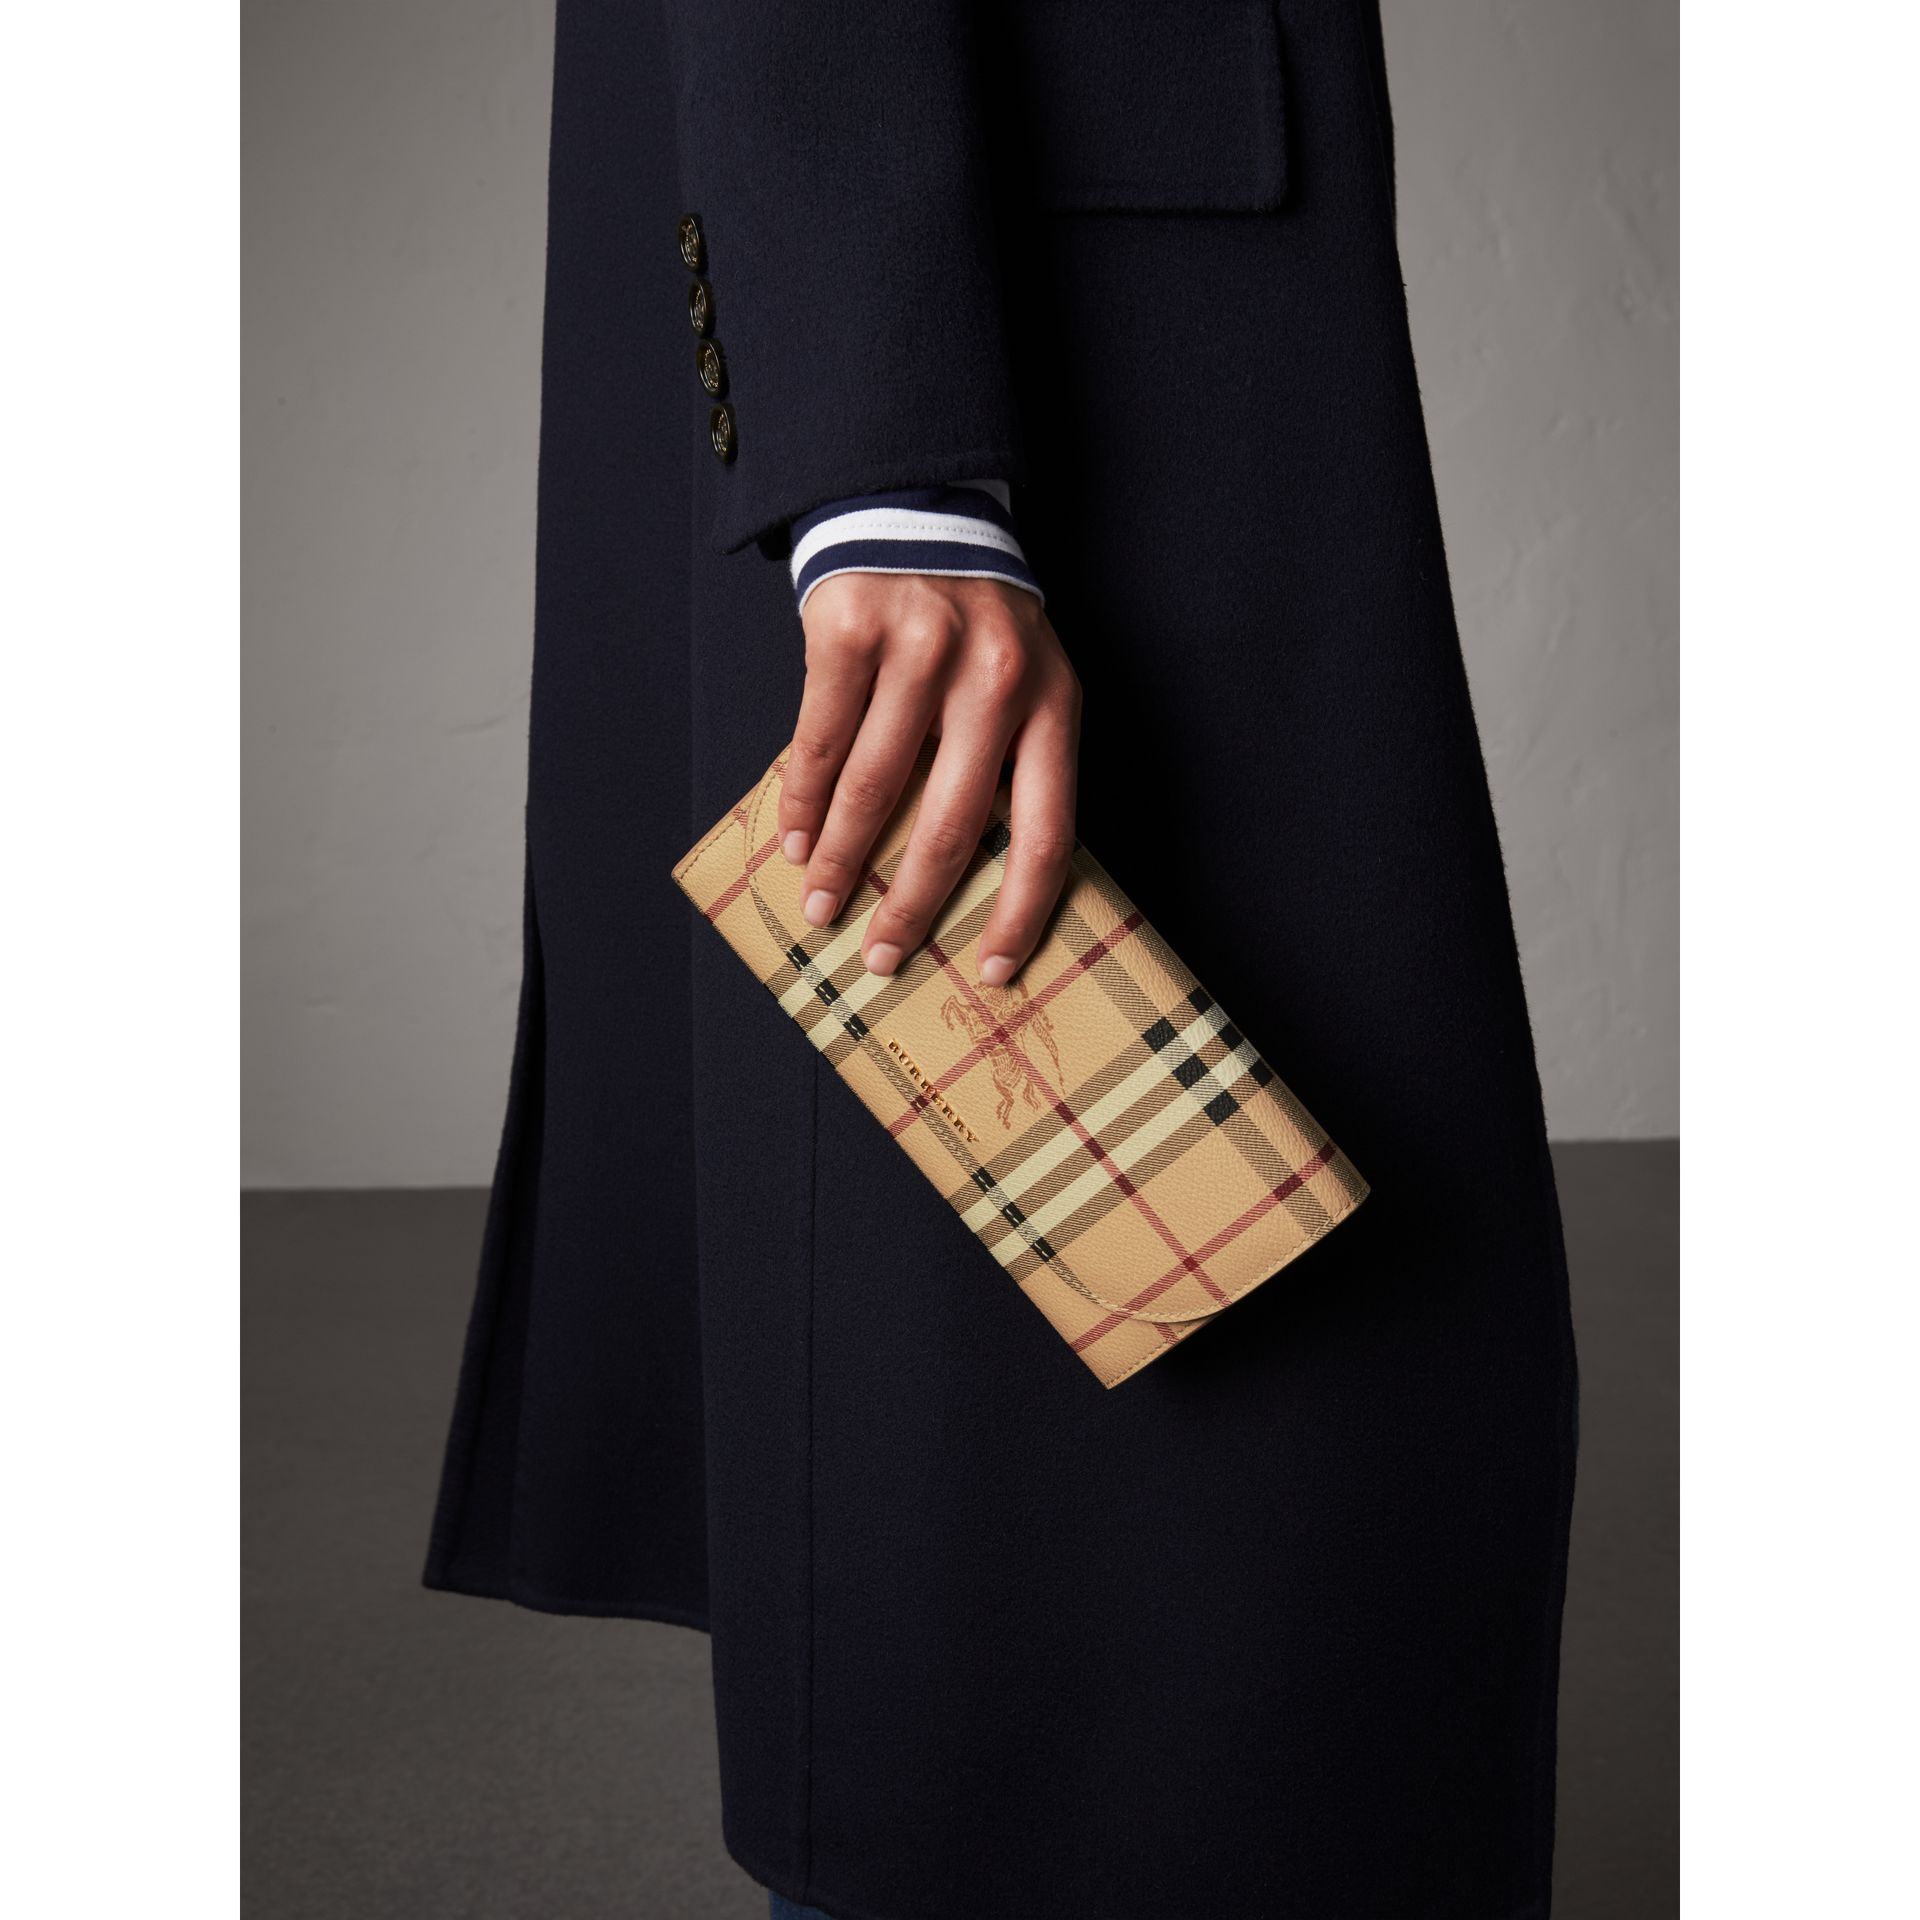 Leather Trim Haymarket Check Wallet with Chain in Mid Camel - Women | Burberry United Kingdom - gallery image 2